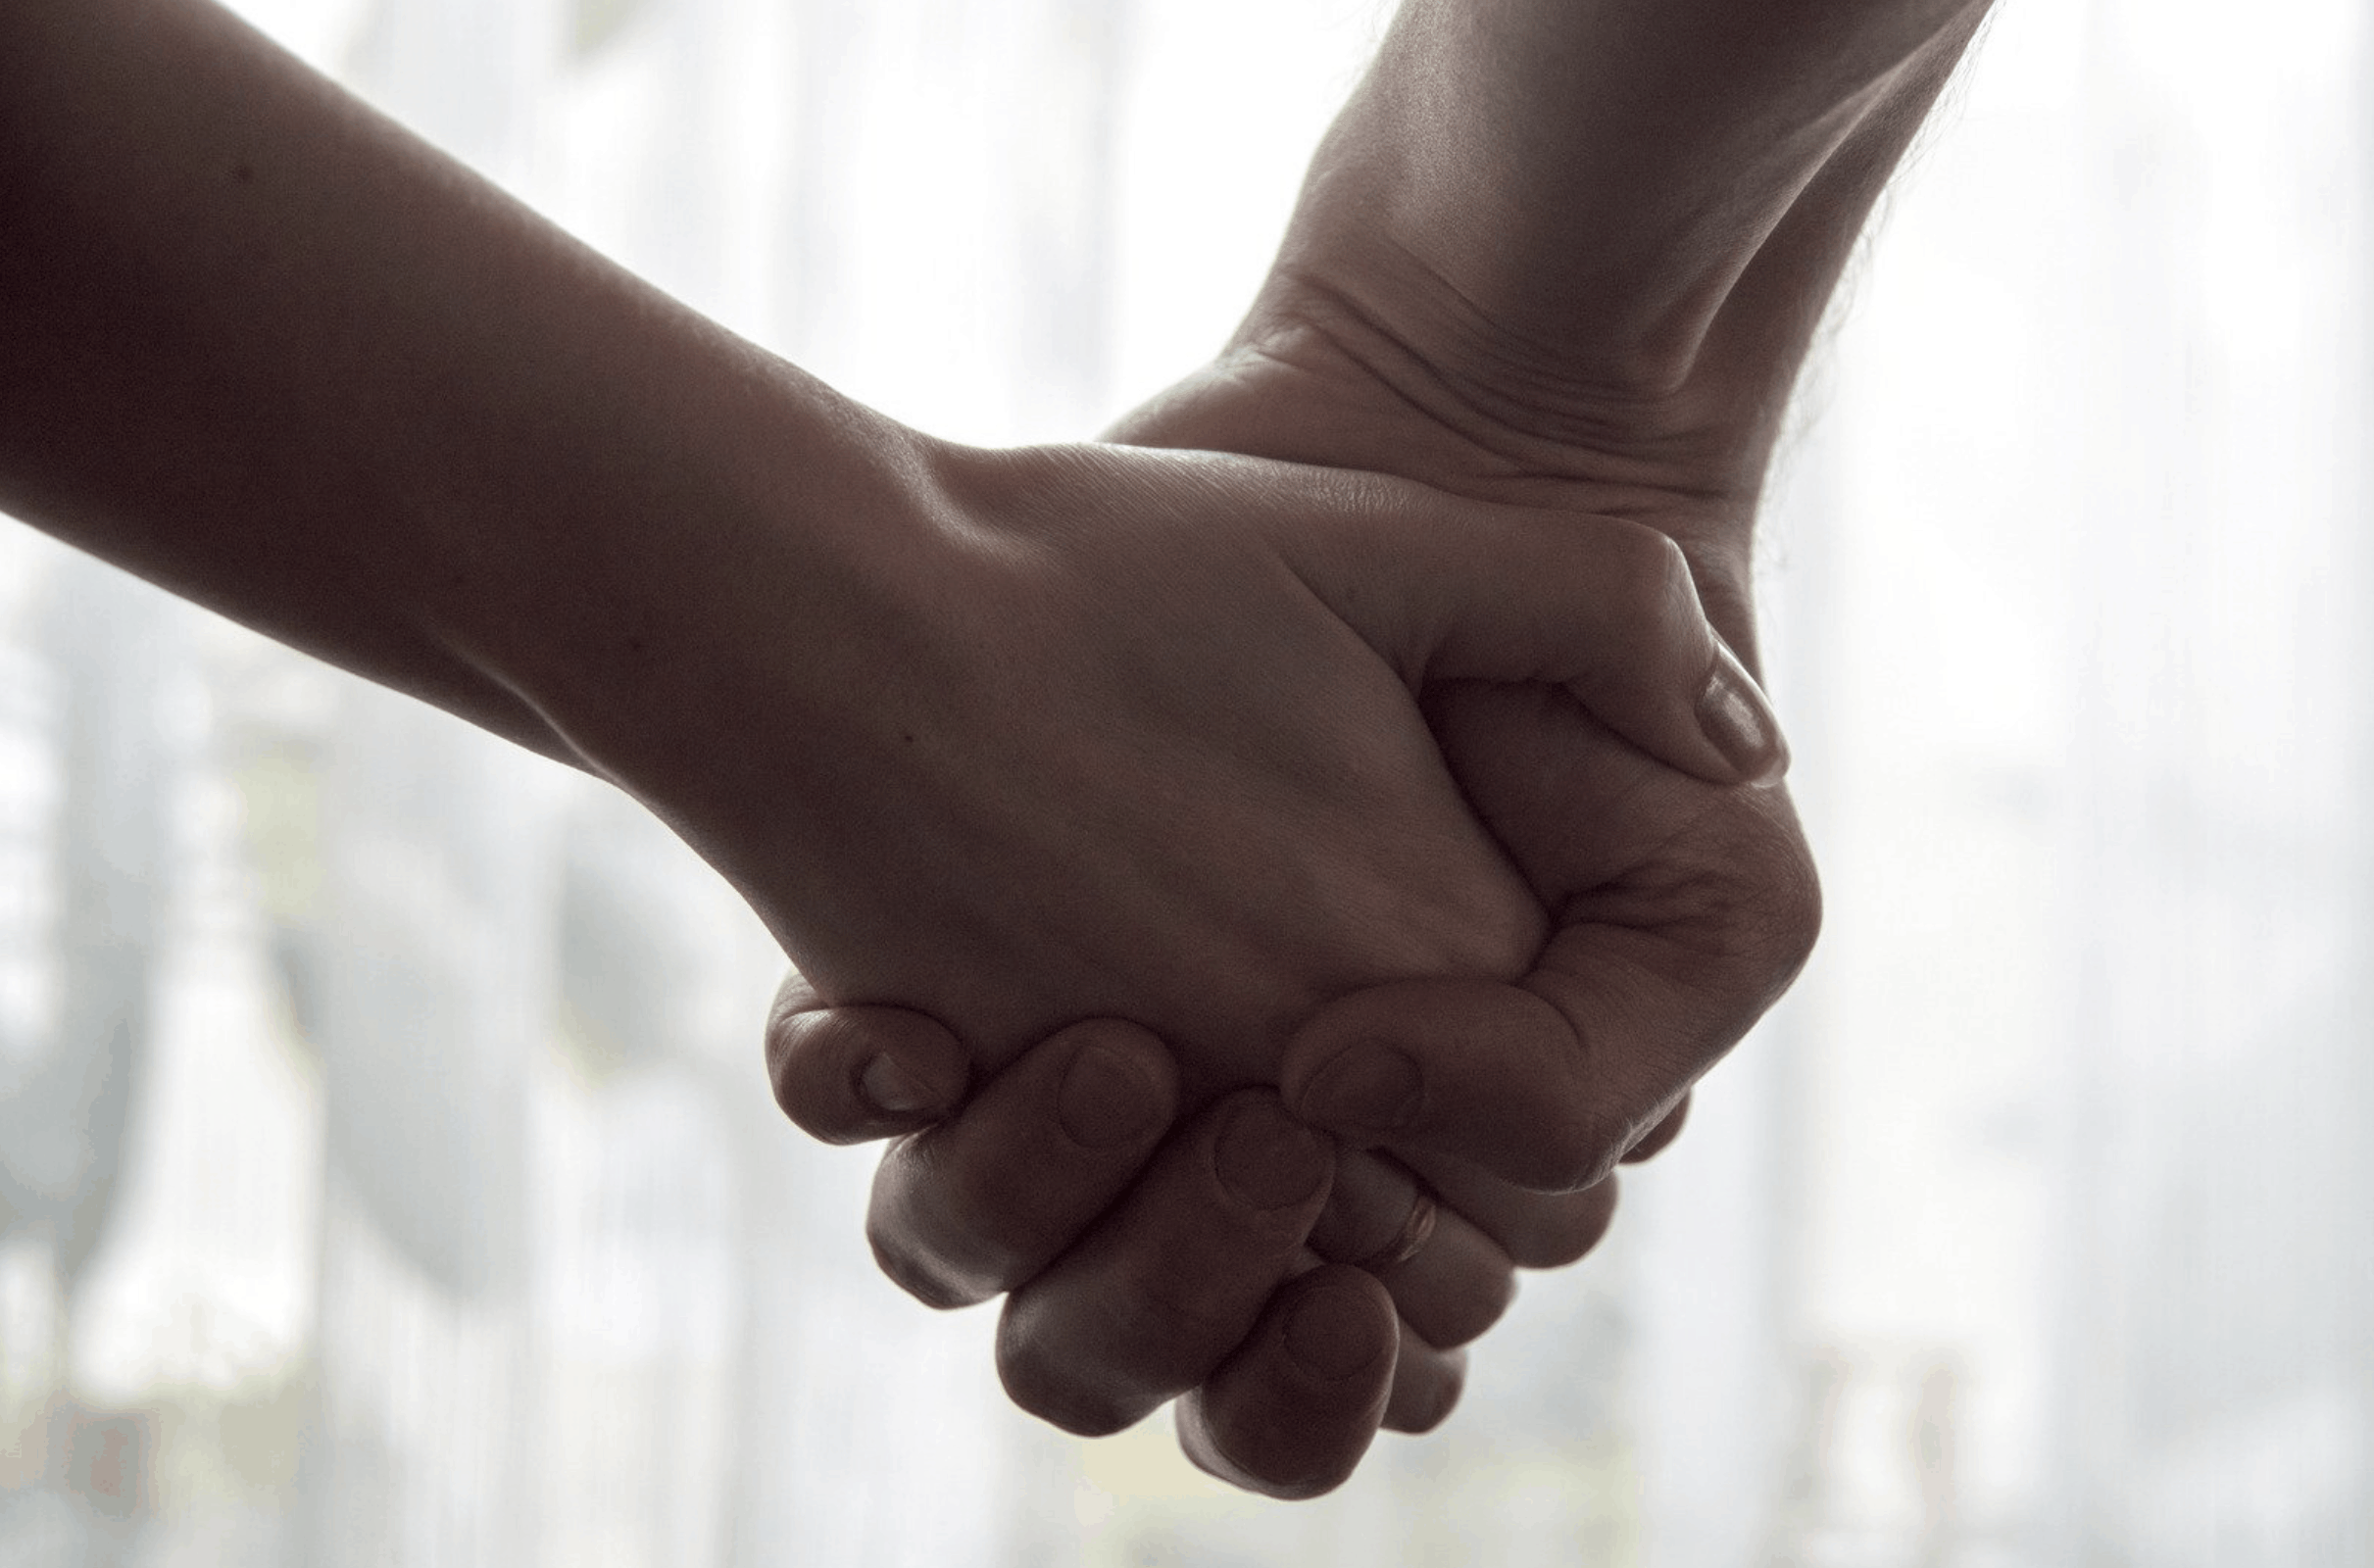 holding hands for suicide prevention